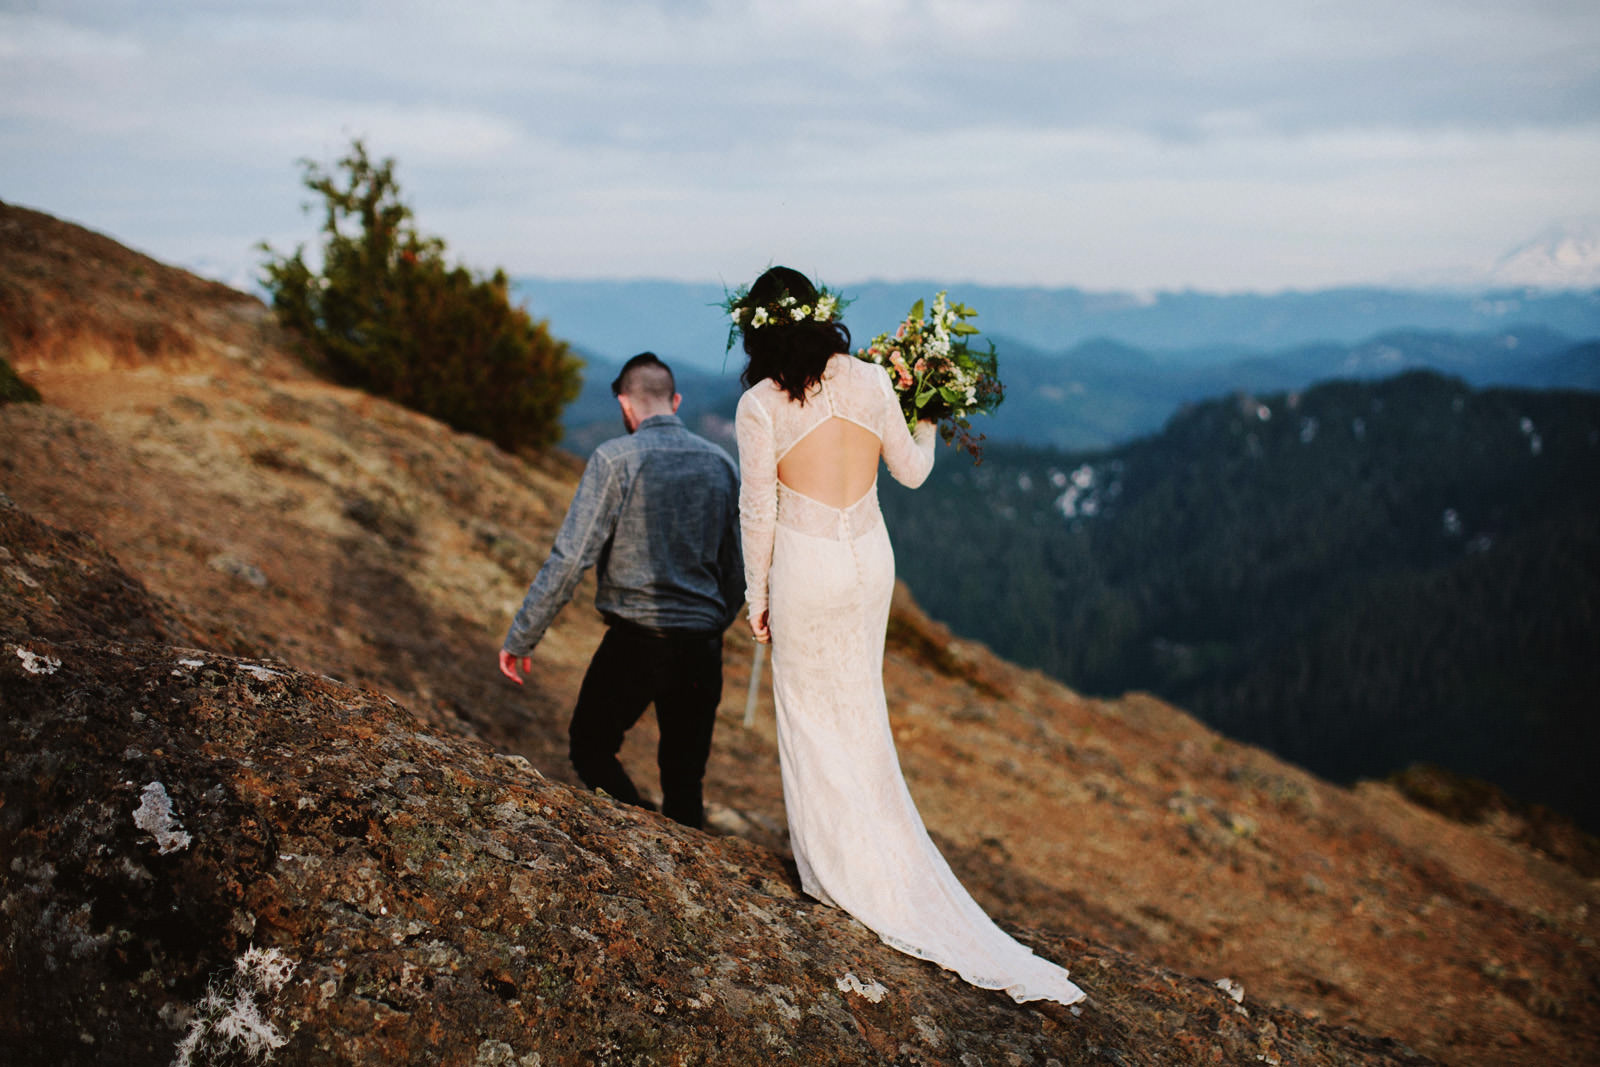 katelynnethan-blog-25 MOUNT RAINIER LOOKOUT ELOPEMENT